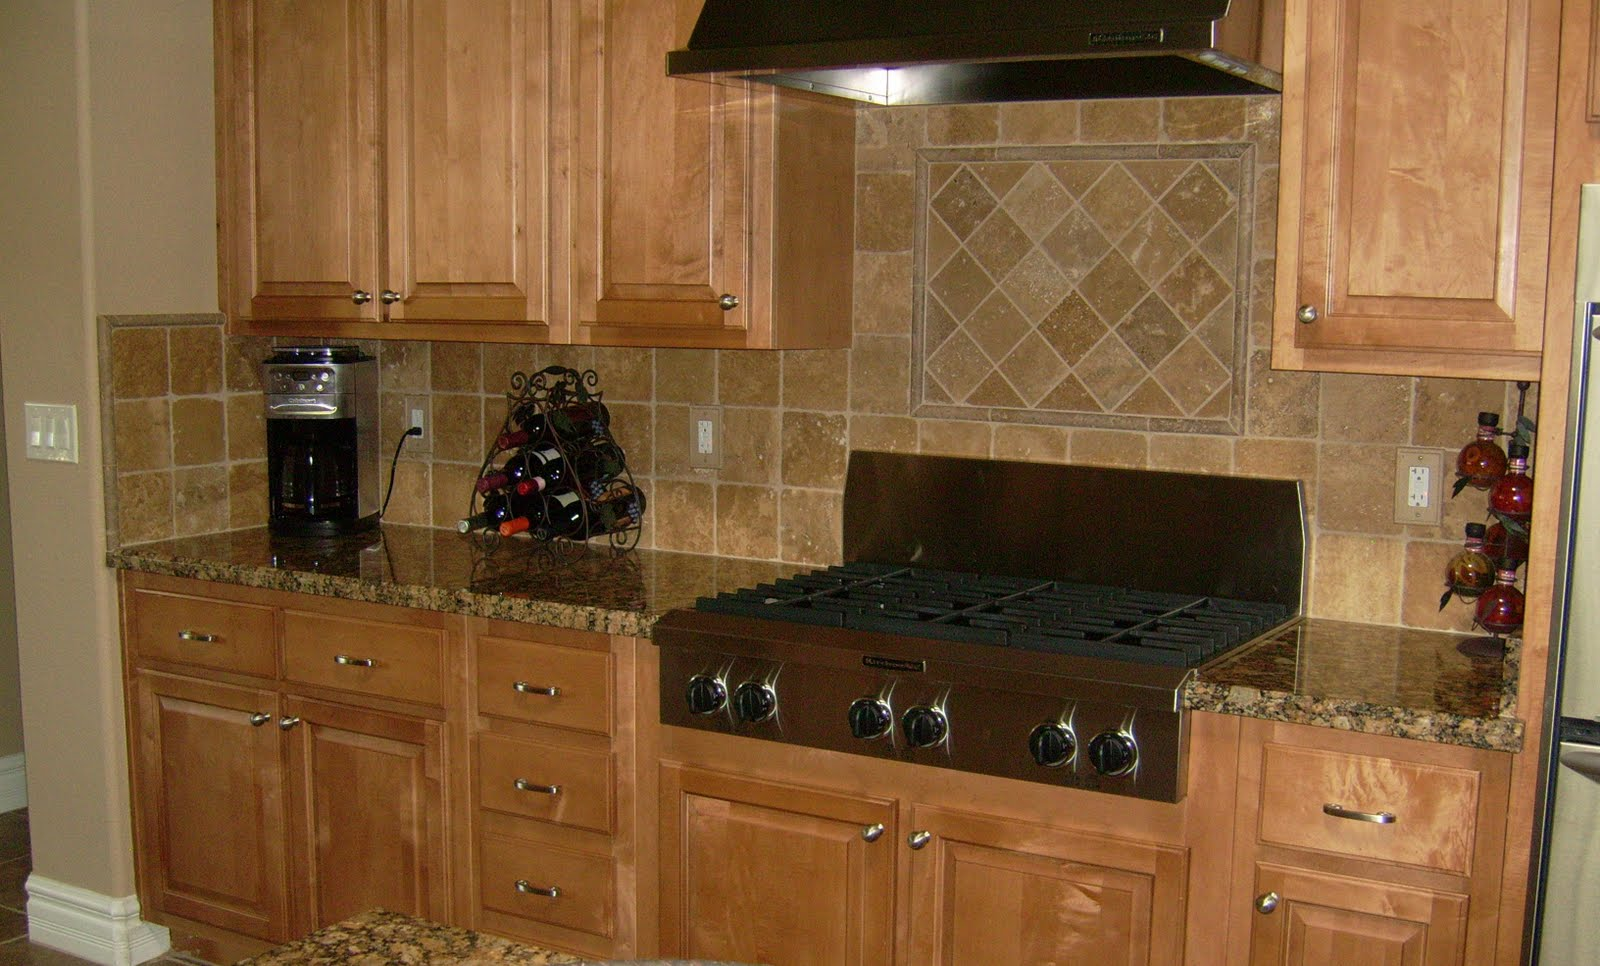 Pictures Kitchen Backsplash Ideas: kitchen backsplash ideas